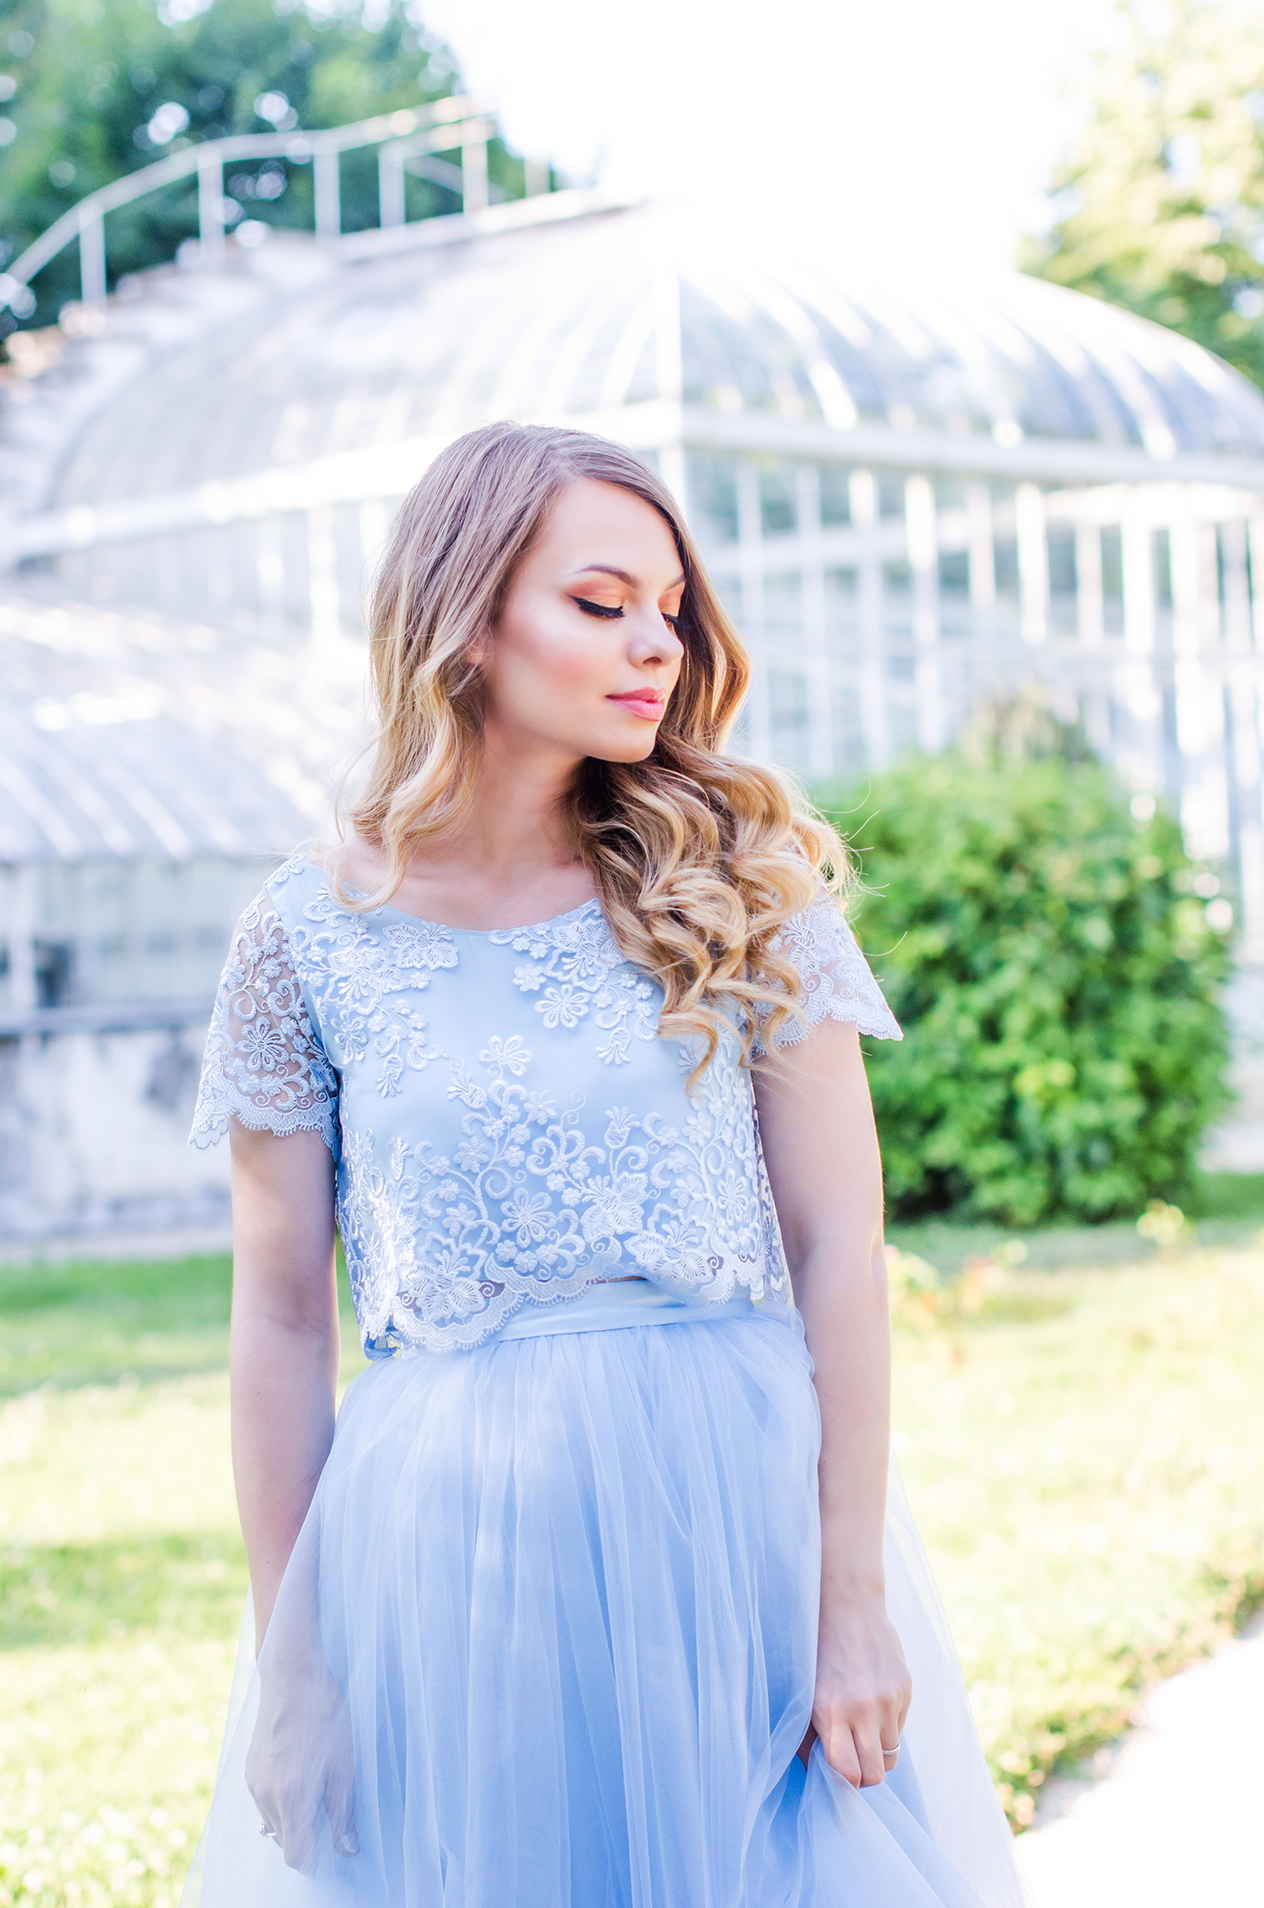 pink-wish-collection-blue-tulle-skirt-lace-top-wedding-princess-dress (17)